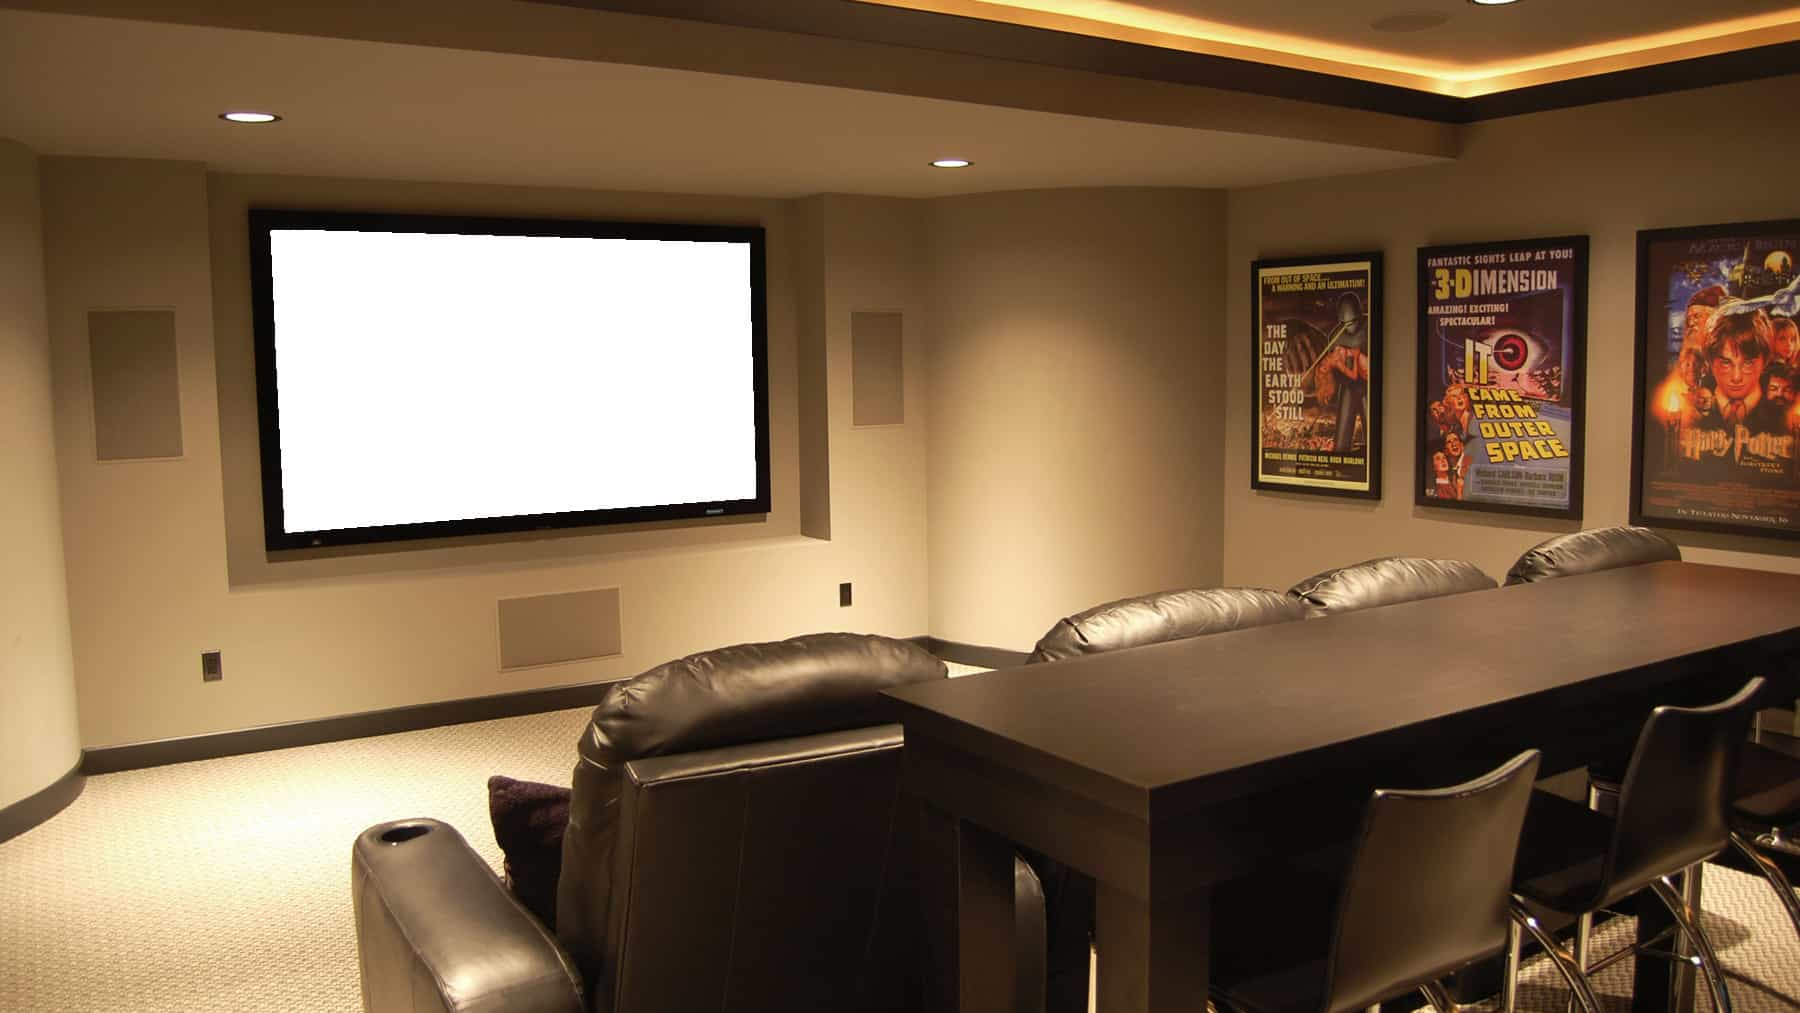 A Complete Media Room Is More Than Screen And Numerous Expensive Speakers Recreating An Authentic Movie Experience At Home Requires Imaginative